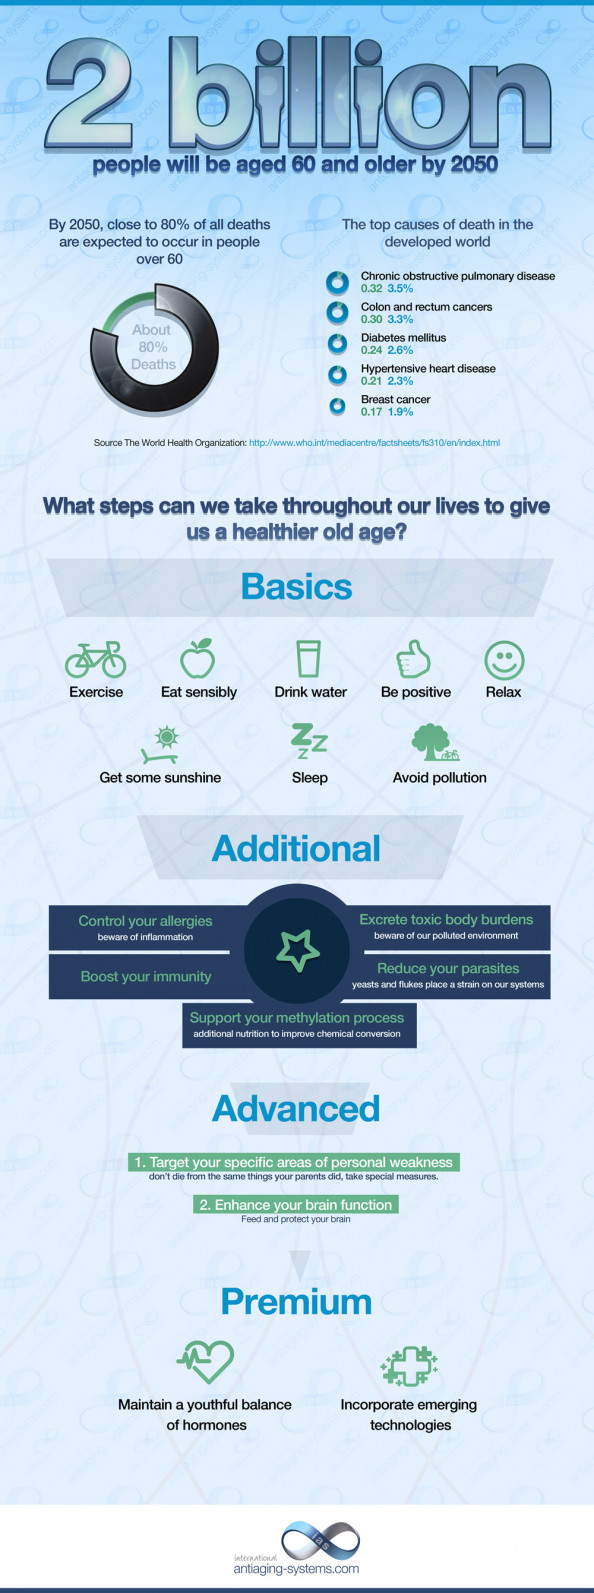 2 Billion people will be aged 60 and older by 2050 Infographic